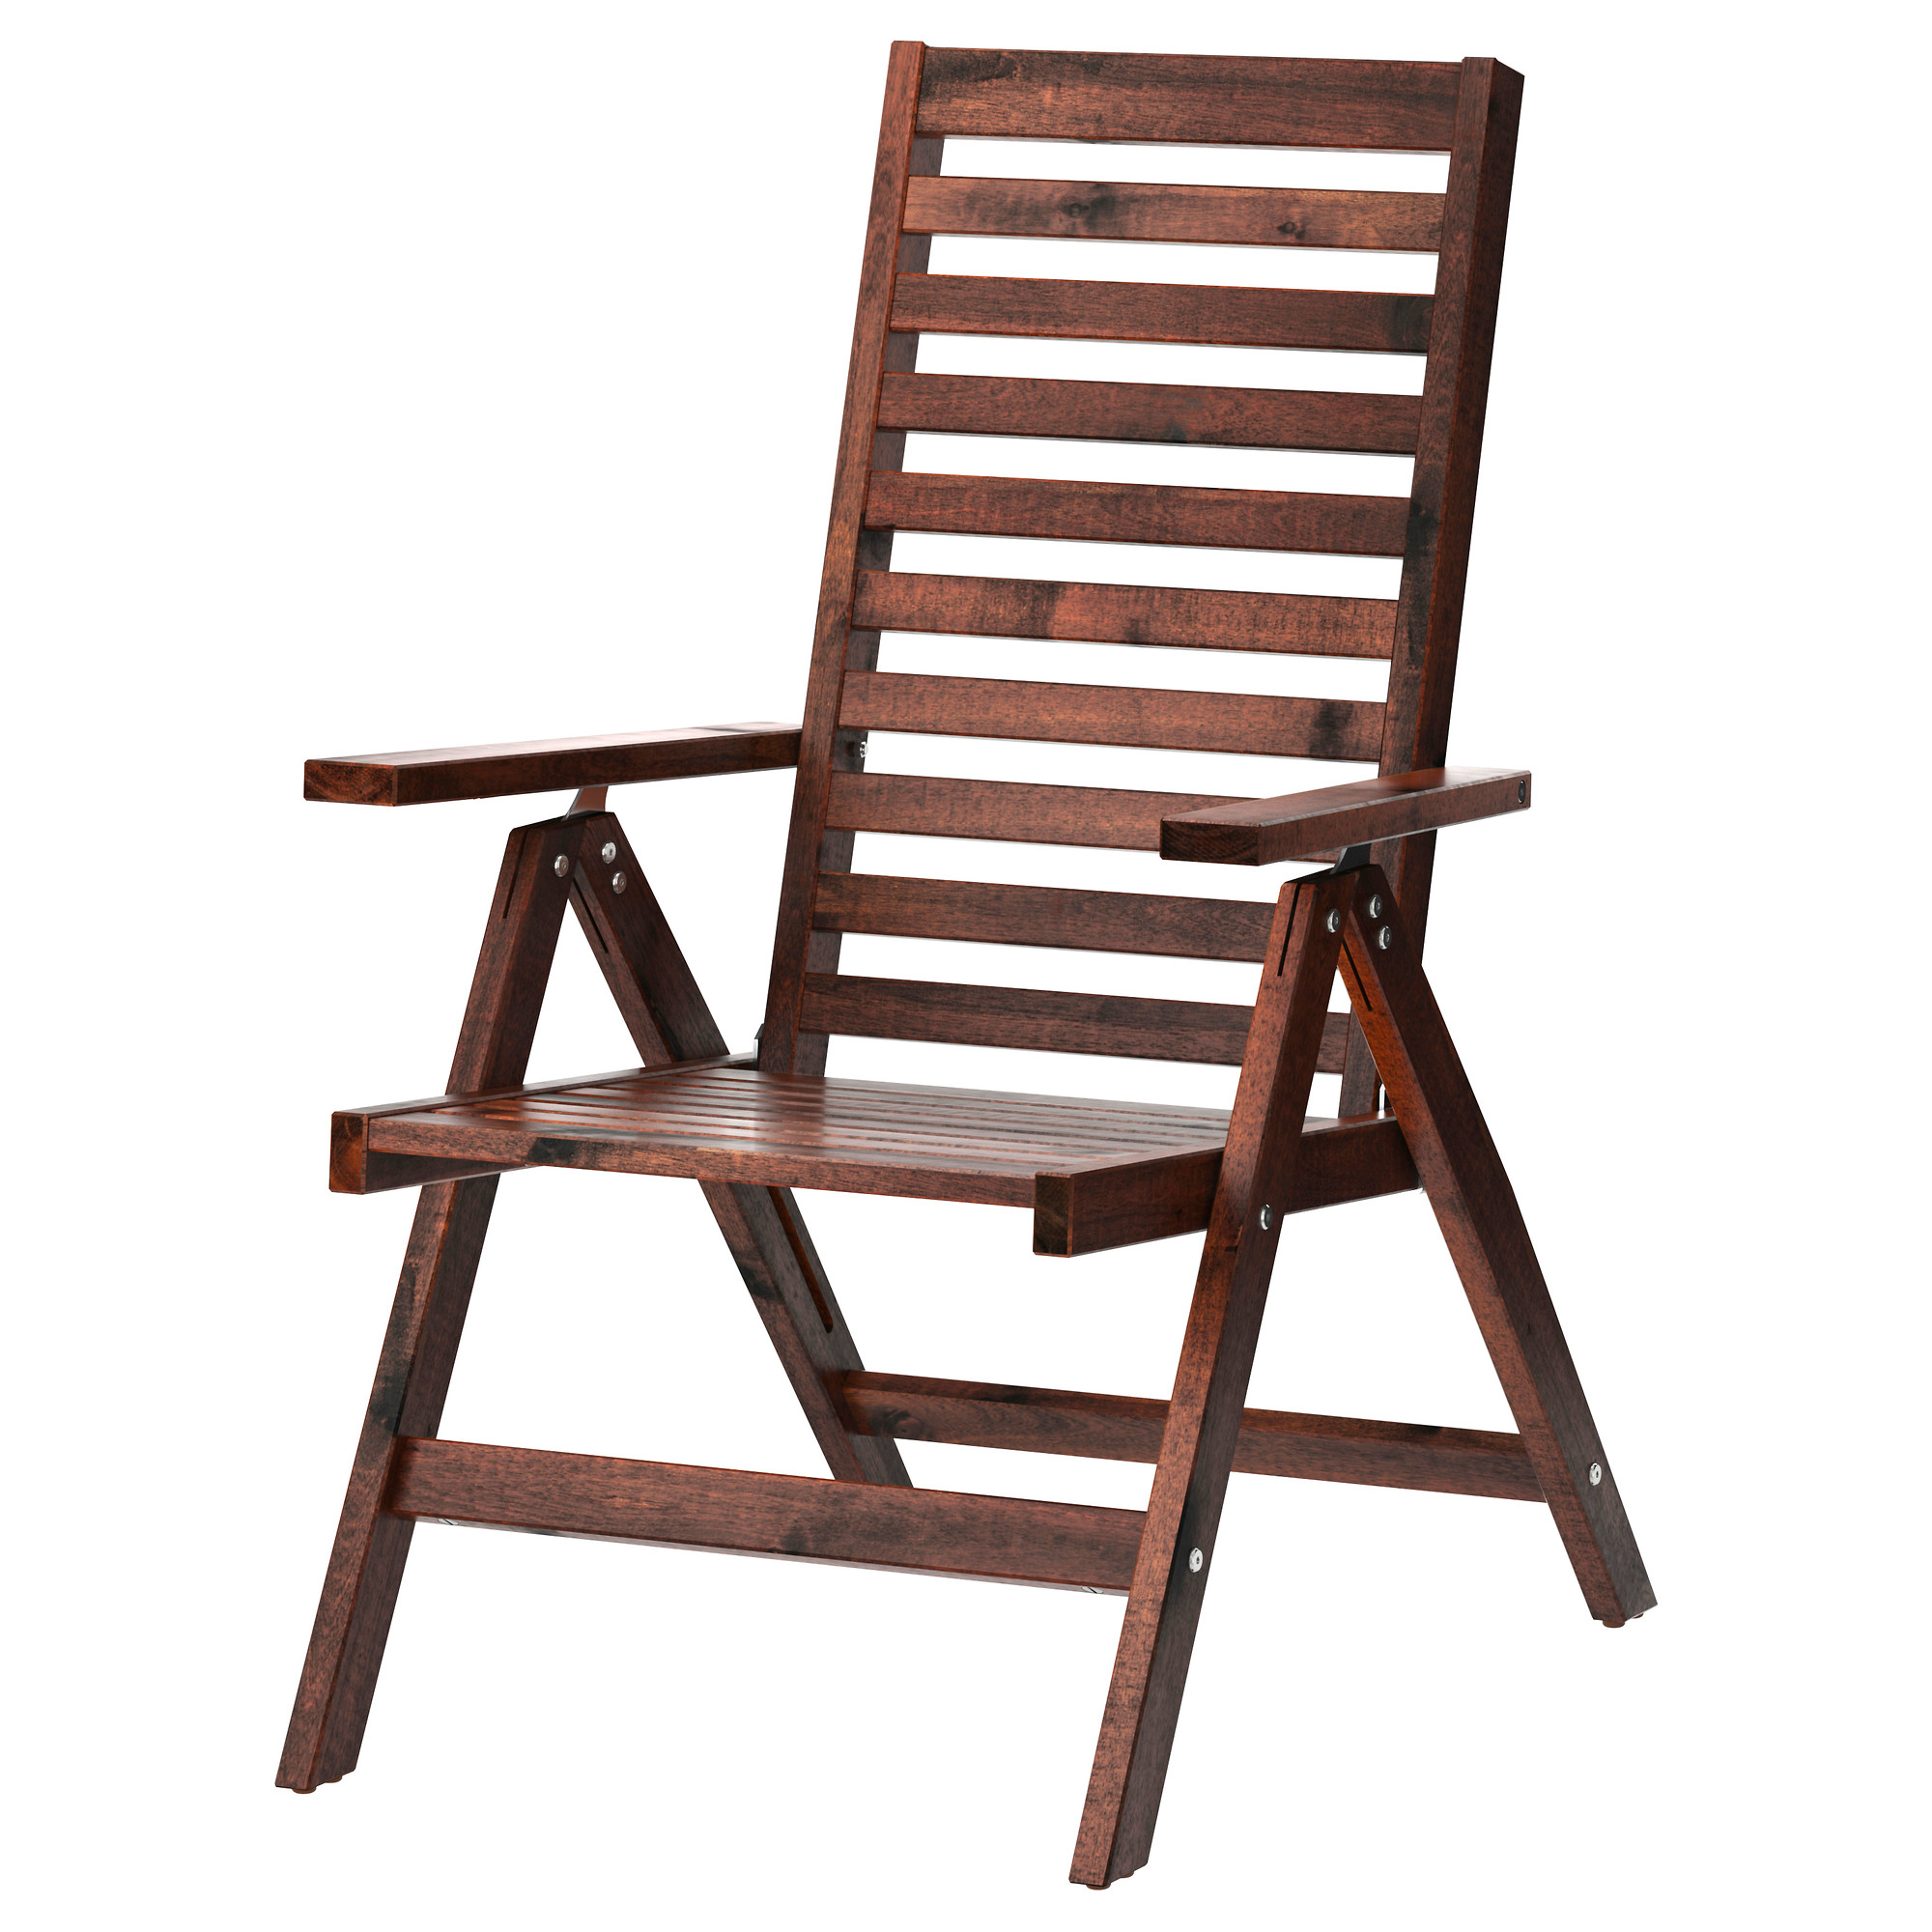 folding garden chairs äpplarö reclining chair, outdoor - foldable brown stained - ikea AGRDOZR